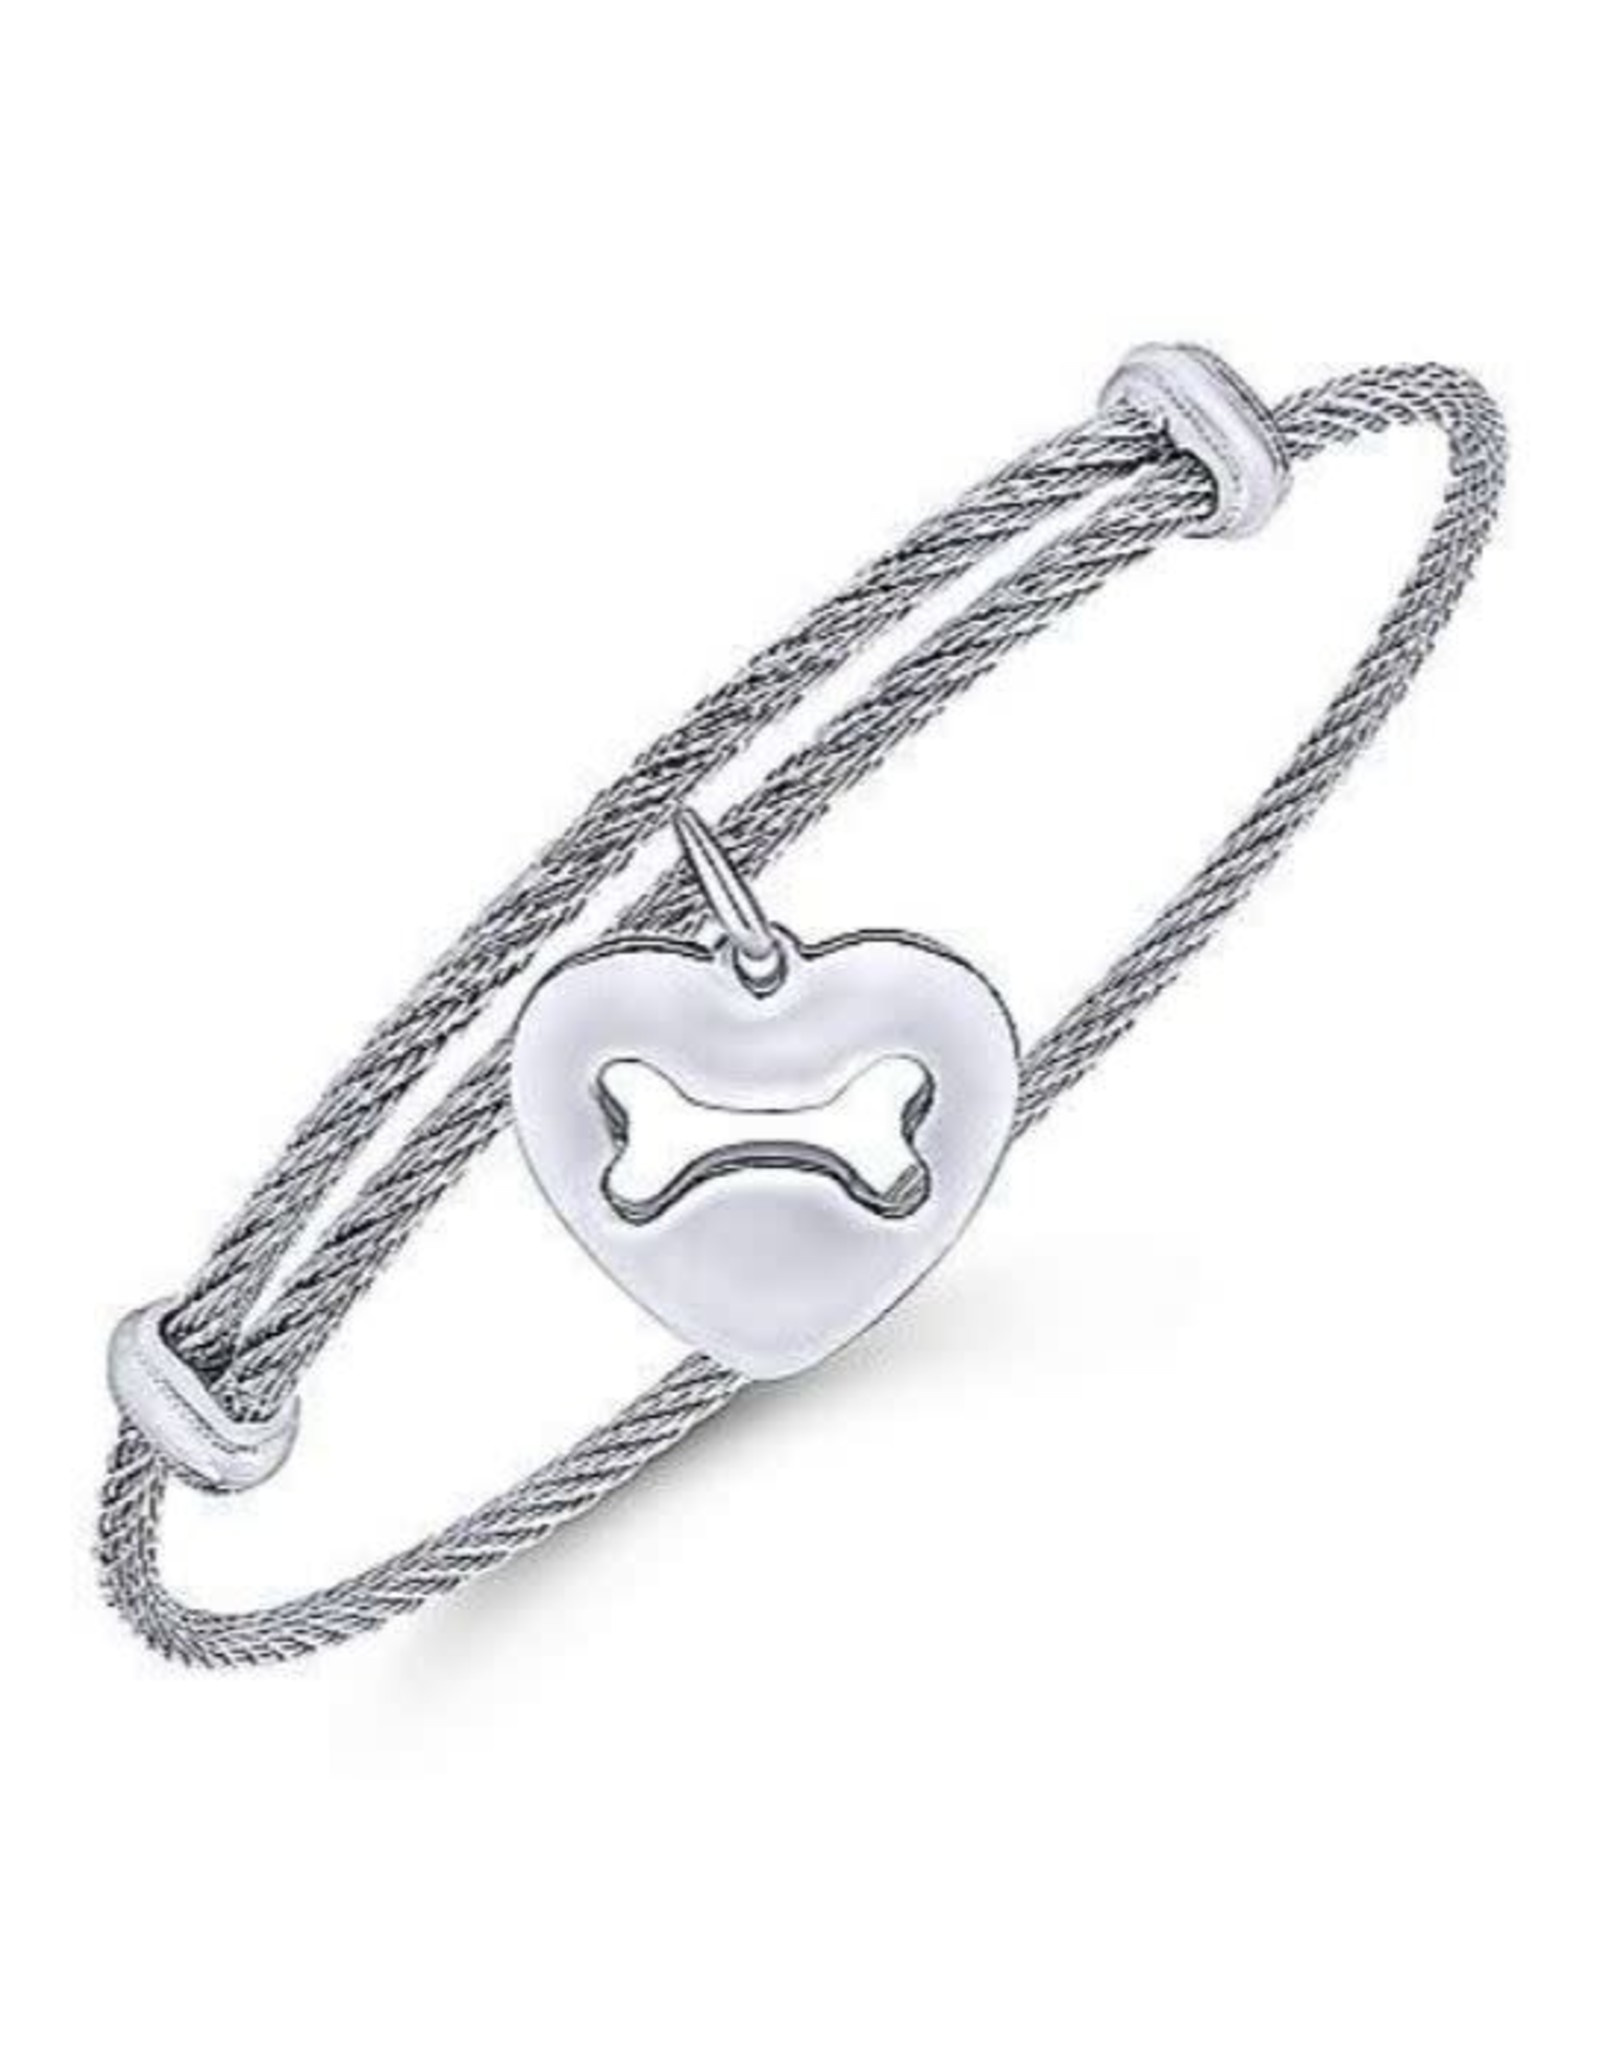 Adjustable Twisted Cable Stainless Steel Bangle with Sterling Silver Doggy Bone Charm